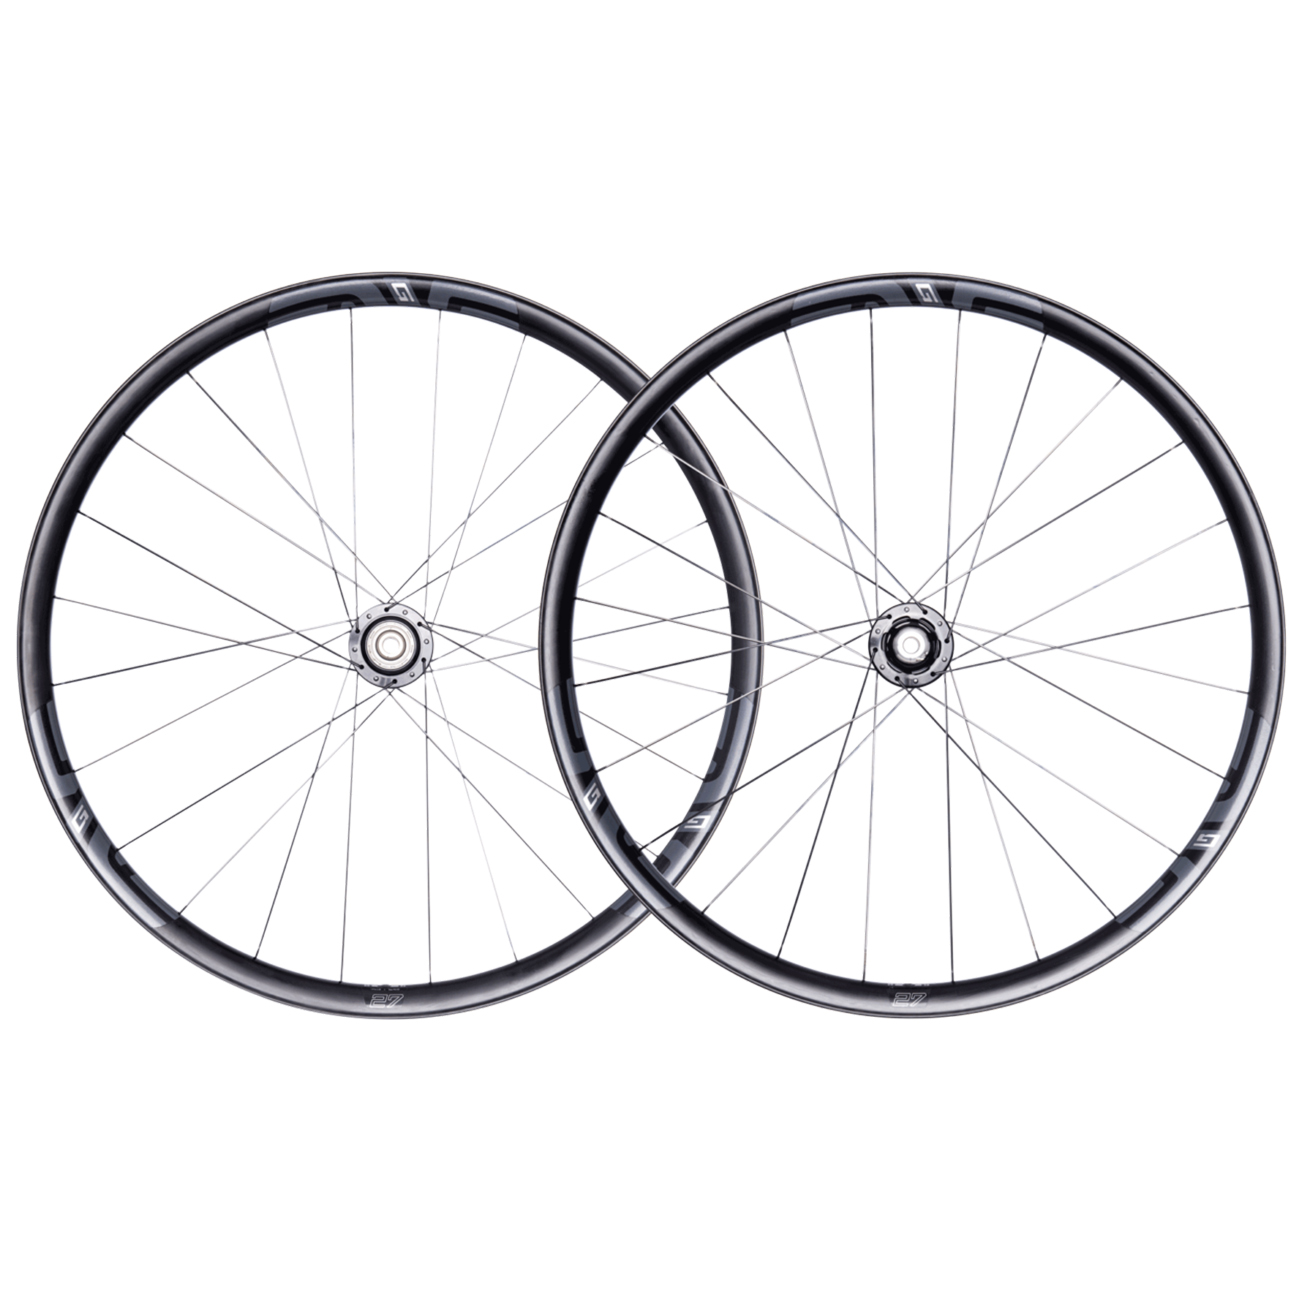 "Enve G27 Disc Clincher Gravel Wheelset 27.5"" - Chris King Hubs"